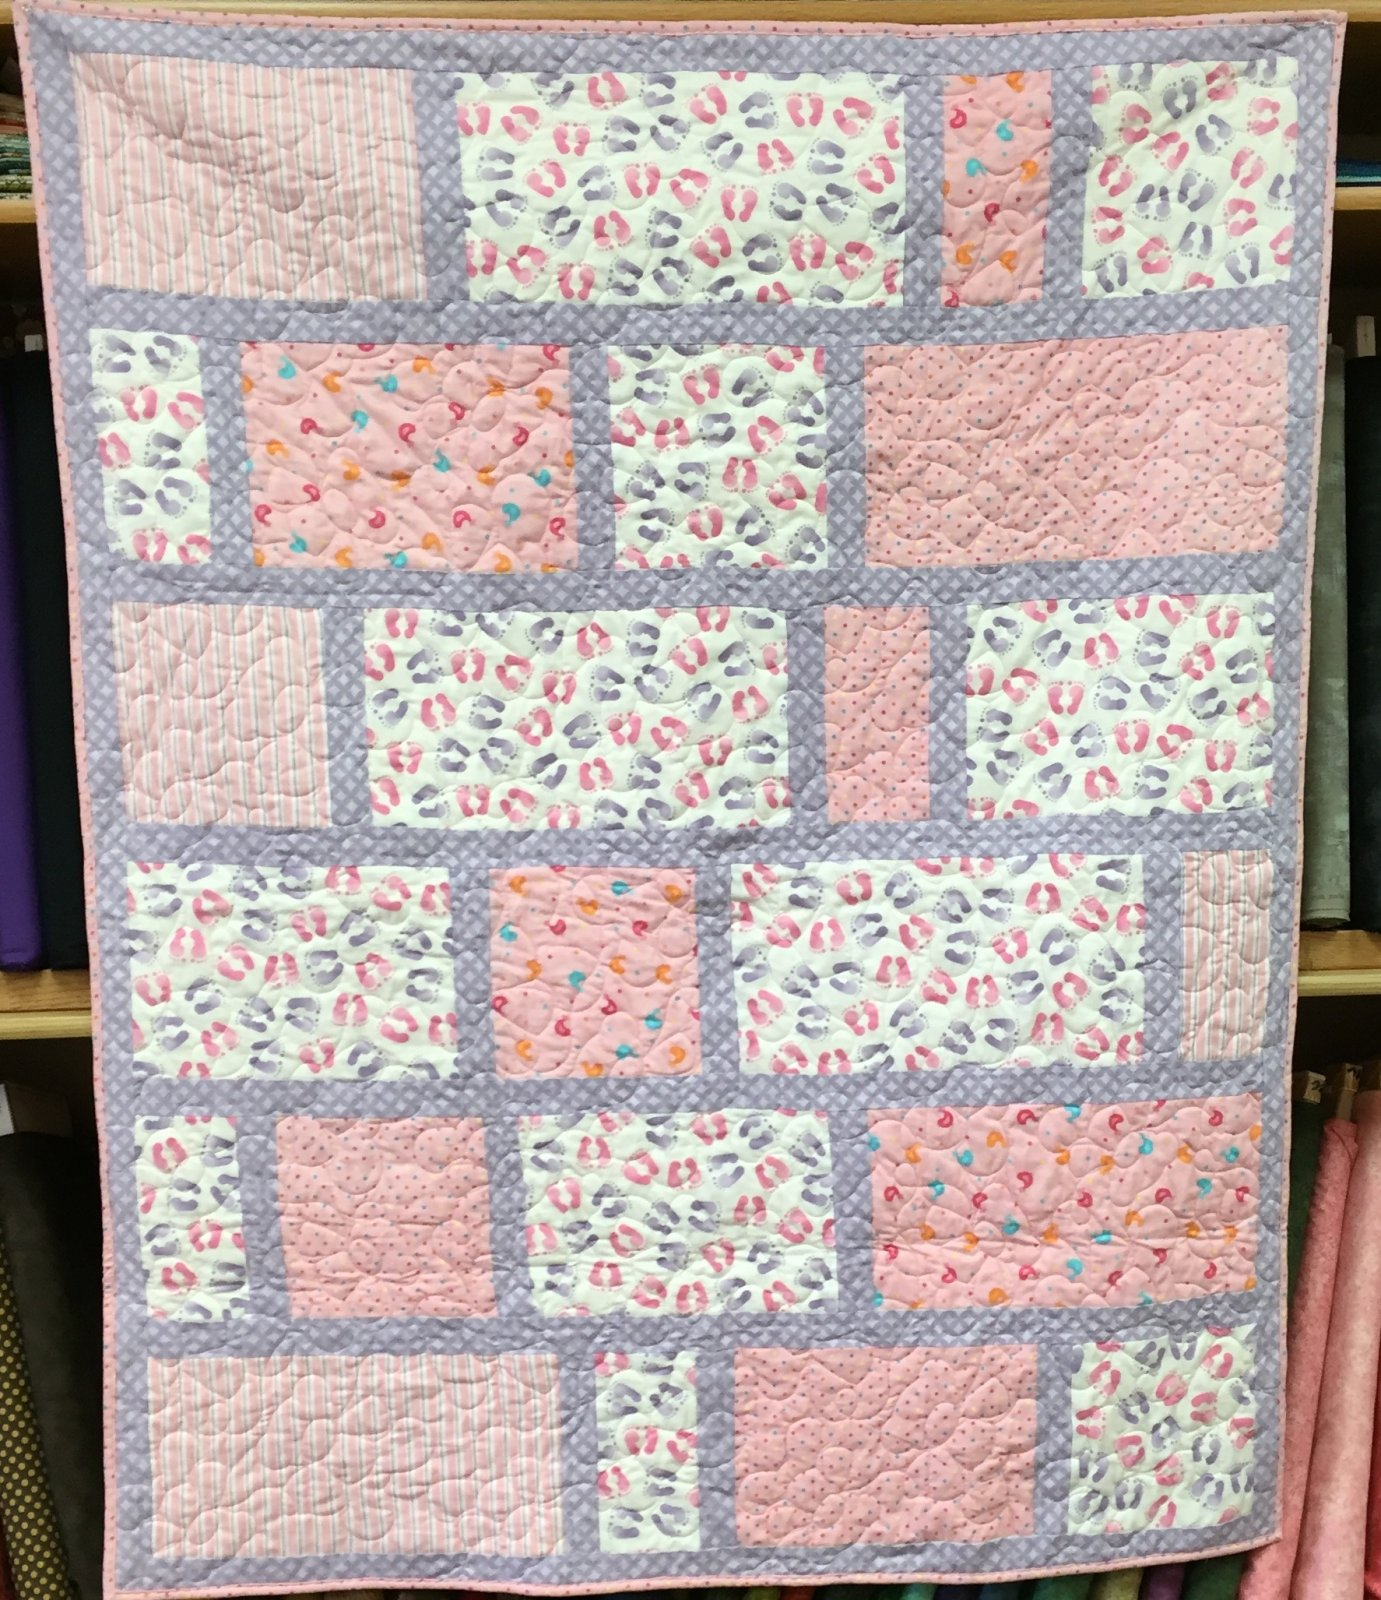 Life Is Good Pink Flannel Baby Quilt 48x60 SOLD!!